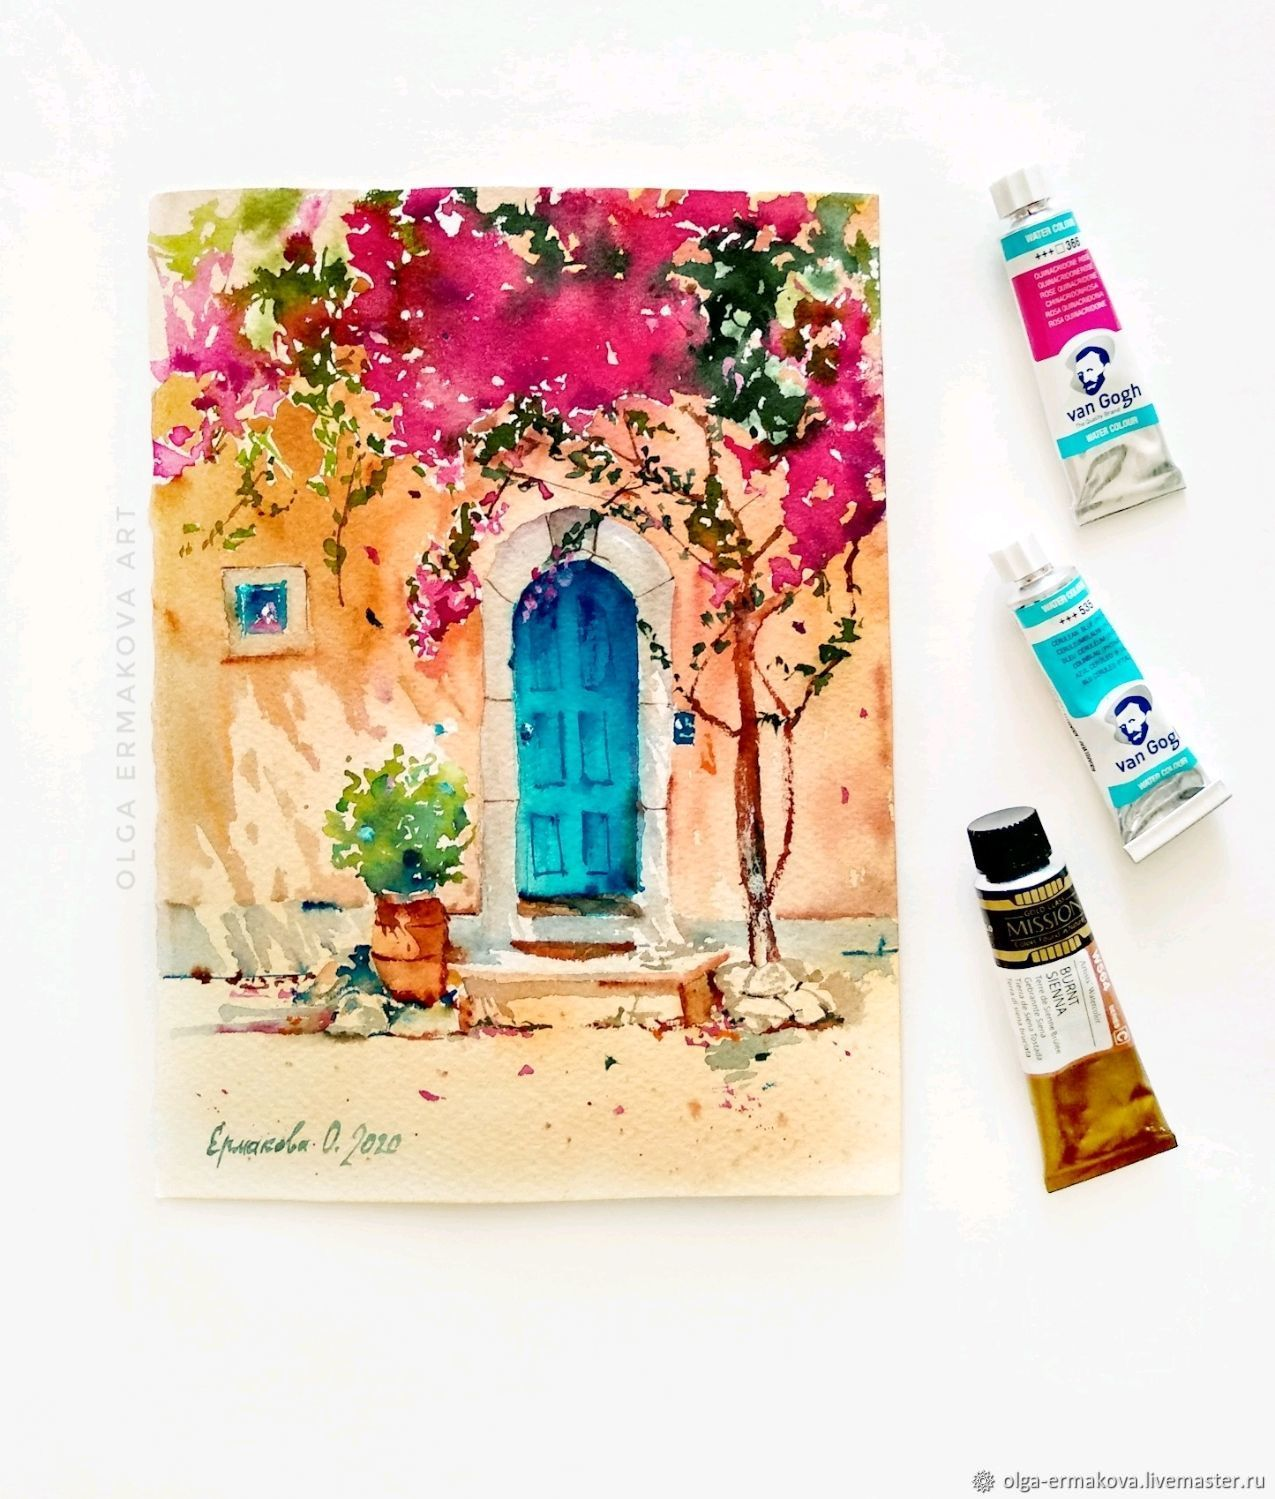 Painting southern house with a door a pot of bougainvillea flowers watercolor, Pictures, Moscow,  Фото №1